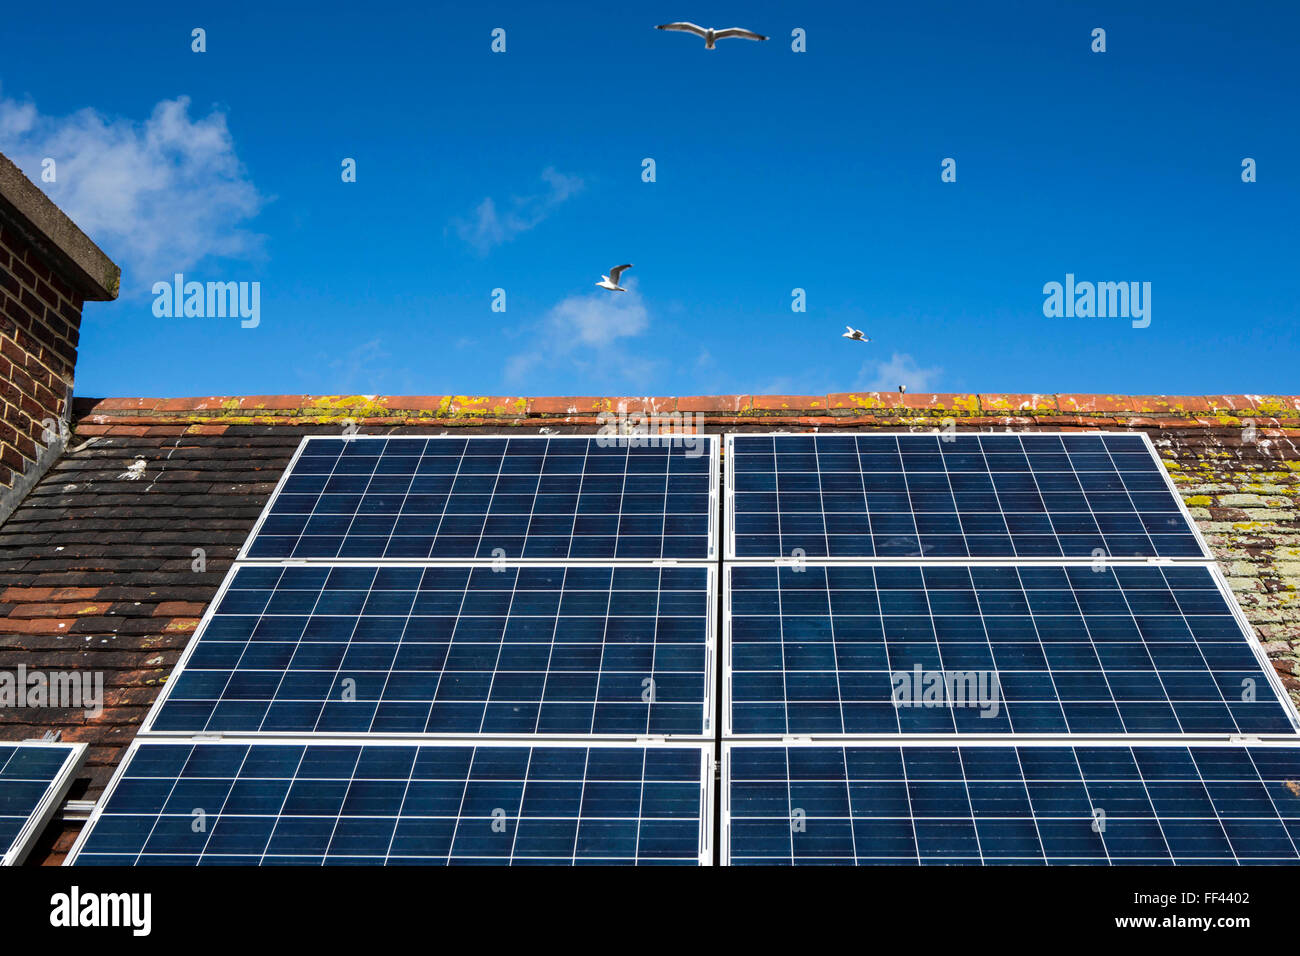 Solar Panels Roof School Stock Photos Amp Solar Panels Roof